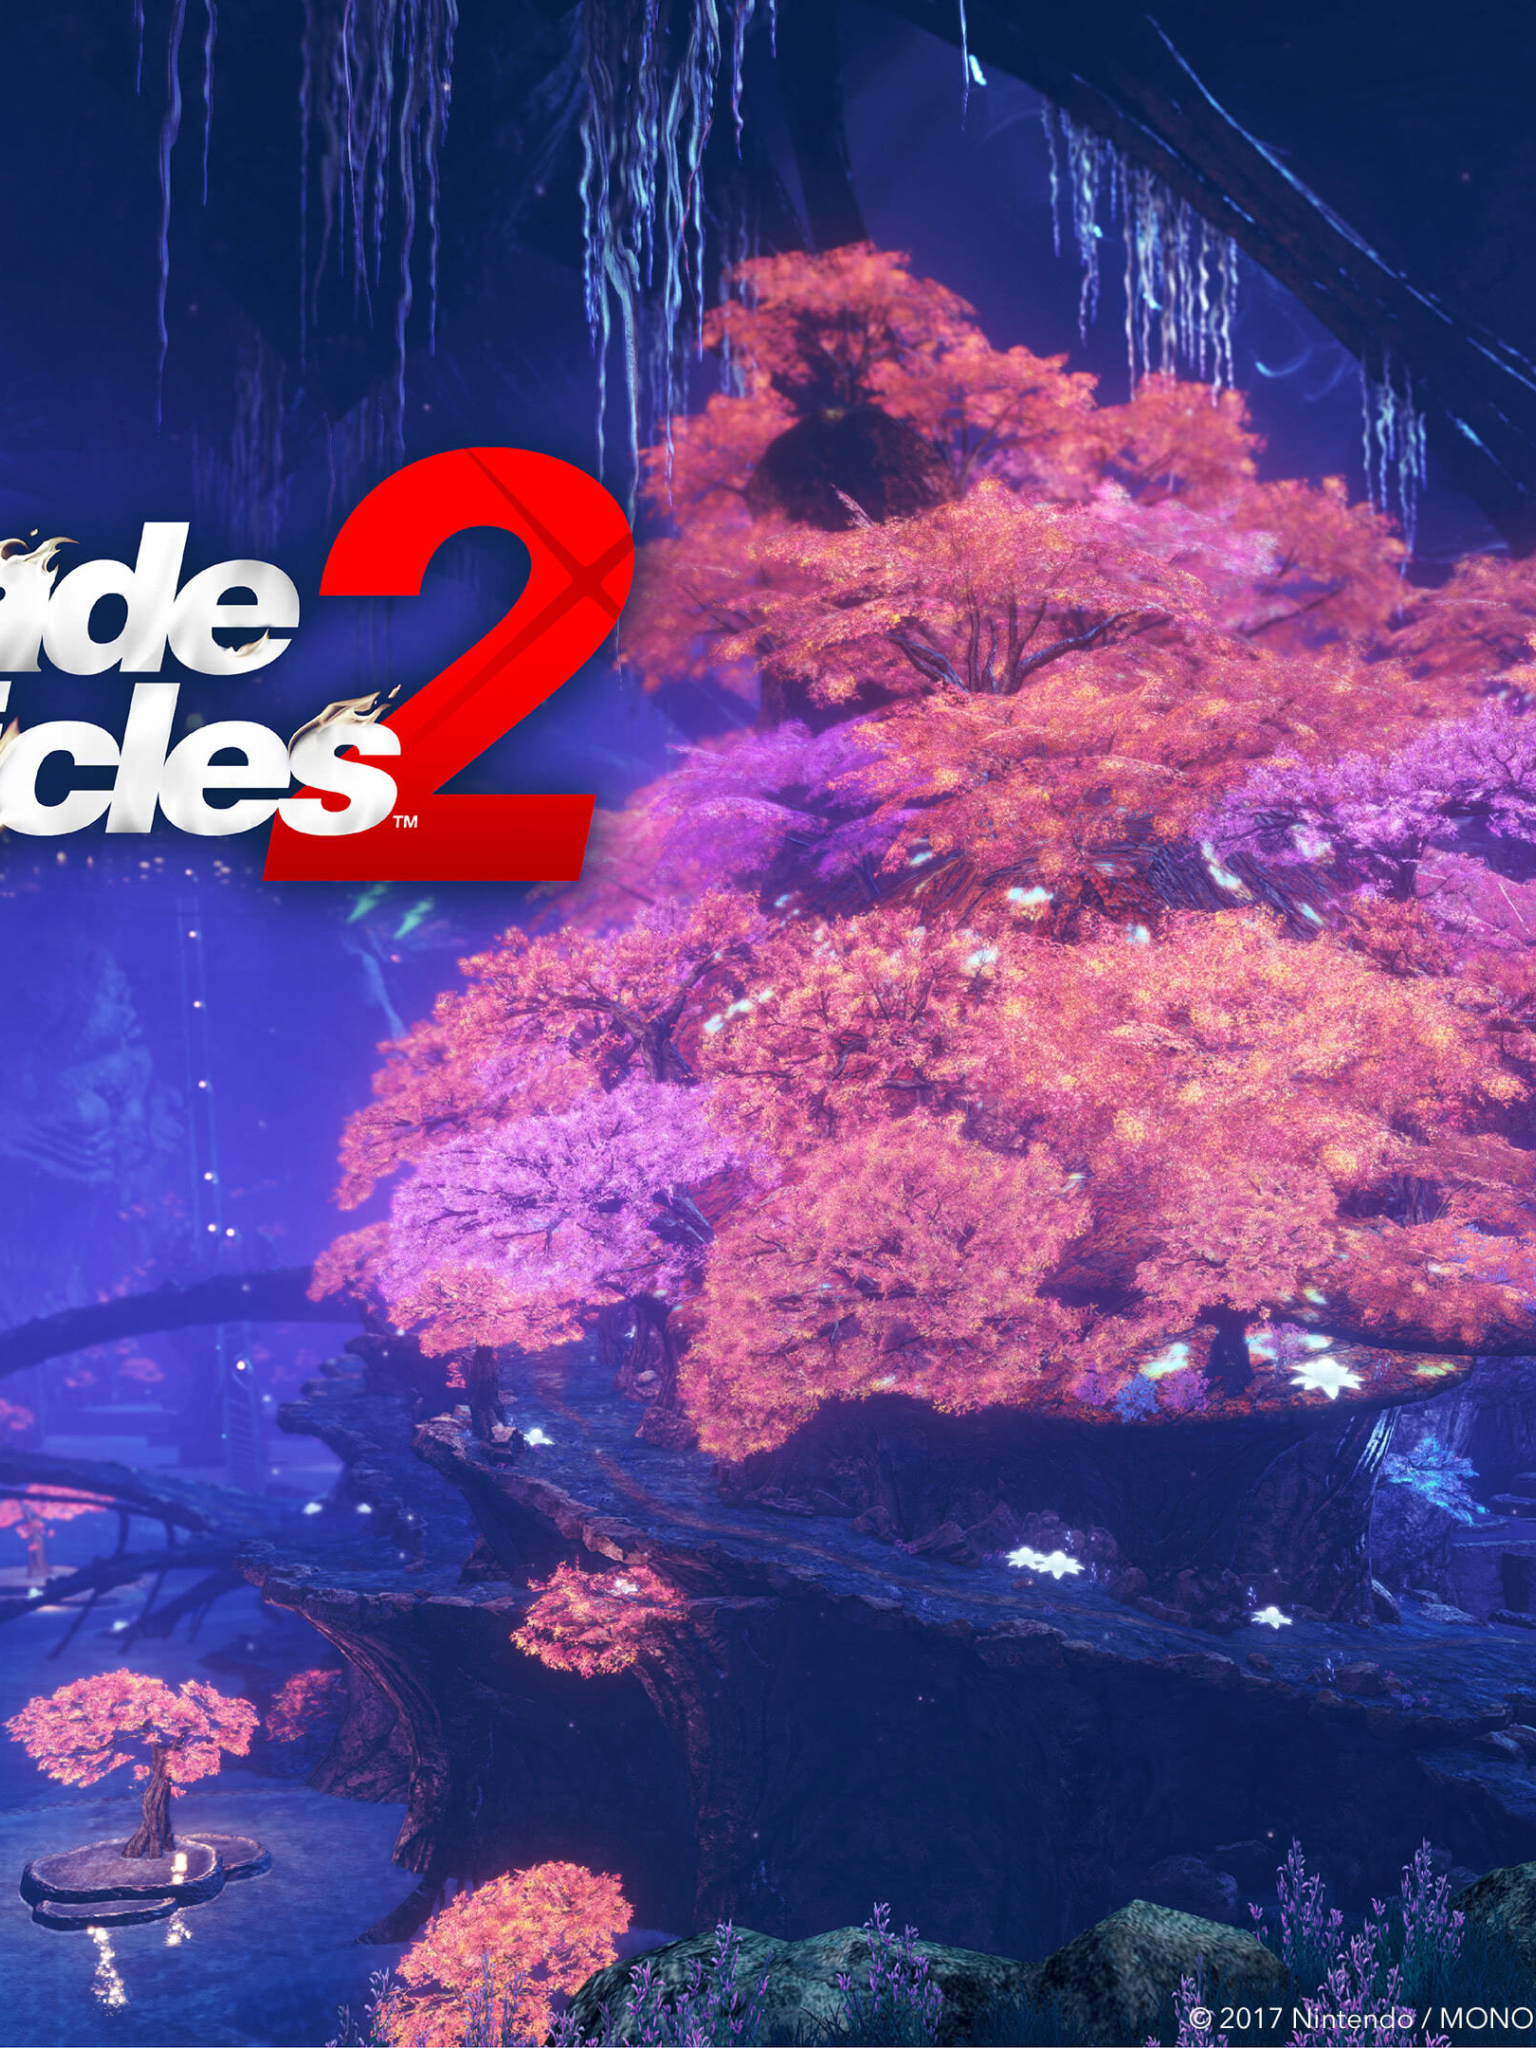 Free Download Xenoblade Chronicles 2 Kingdom Of Uraya Uhd 4k